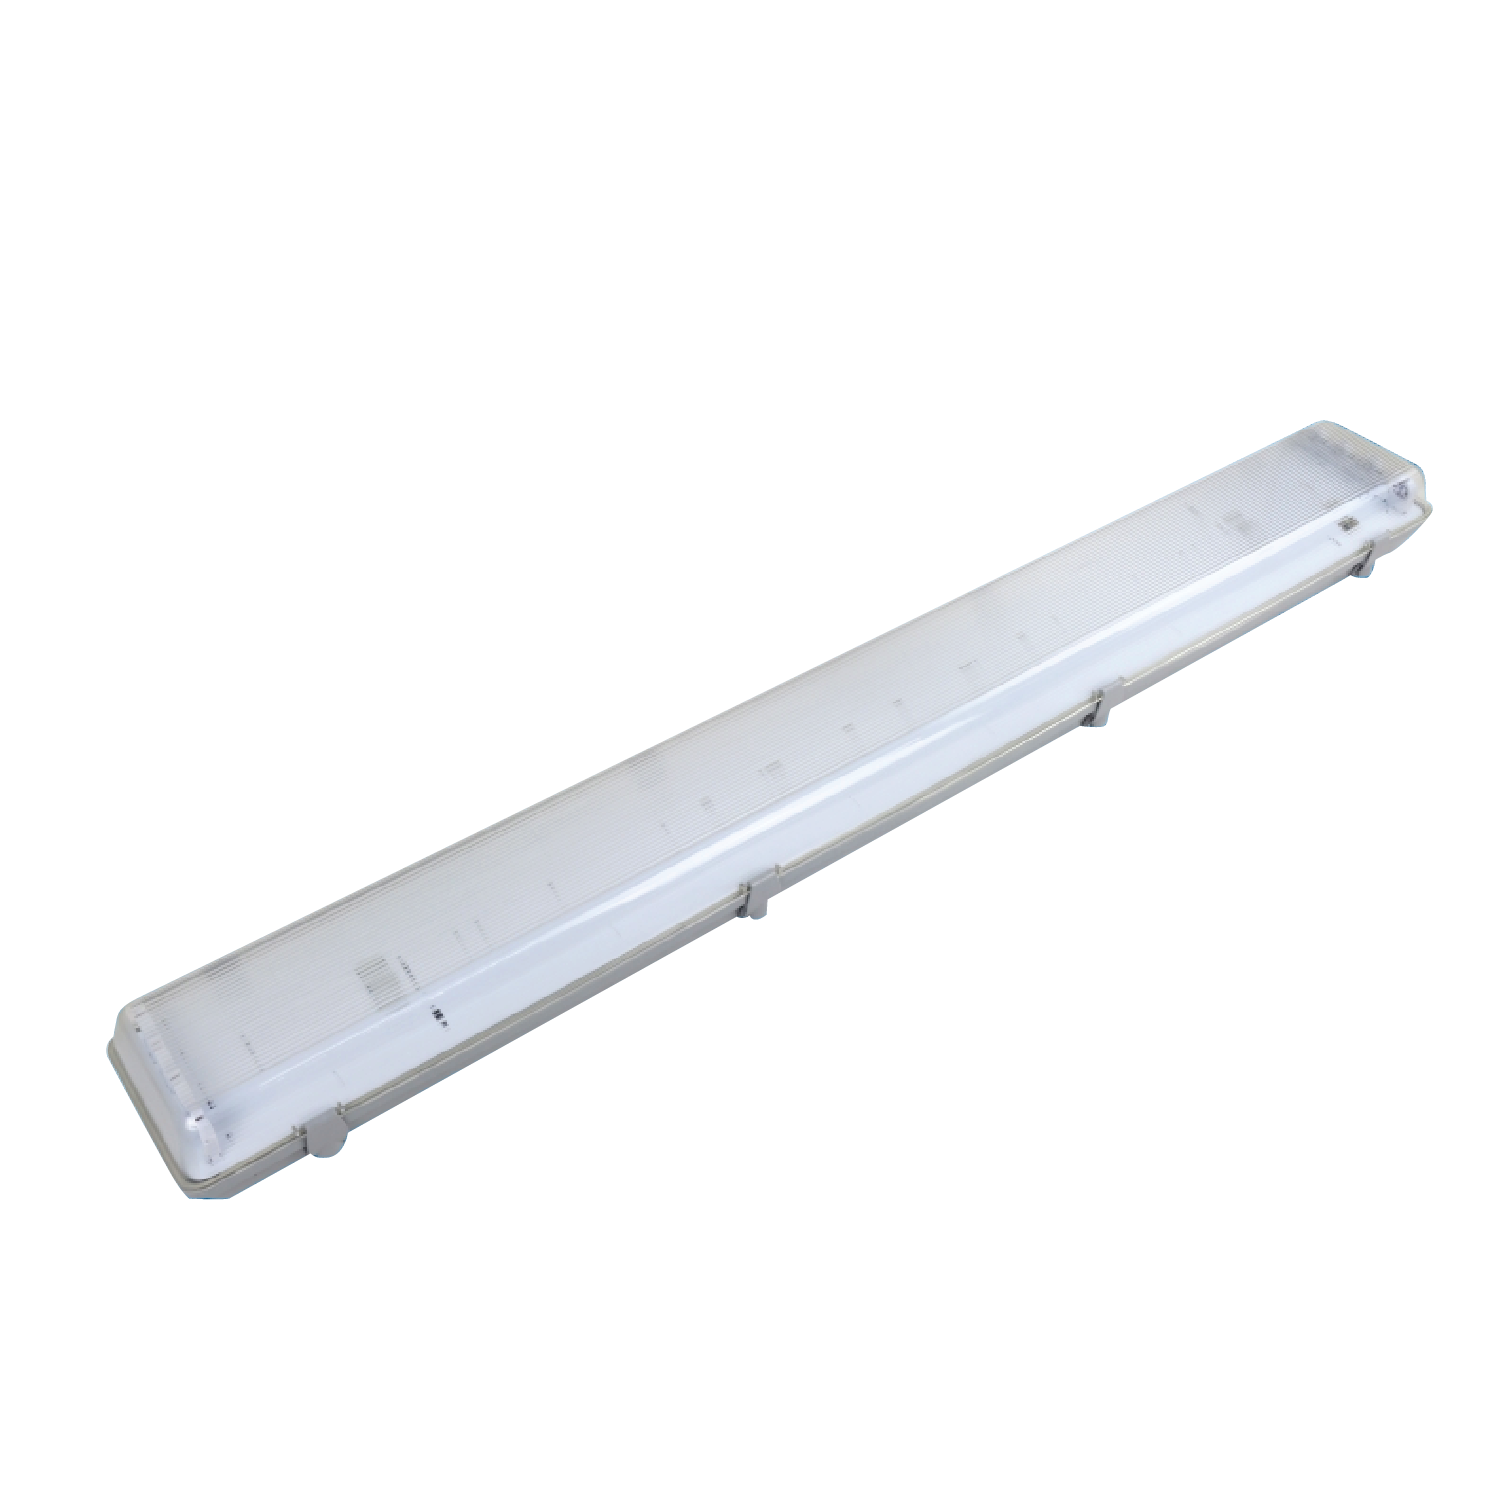 "LED Vapor Tight Linear Fixture with 4"" T8 Fitting"